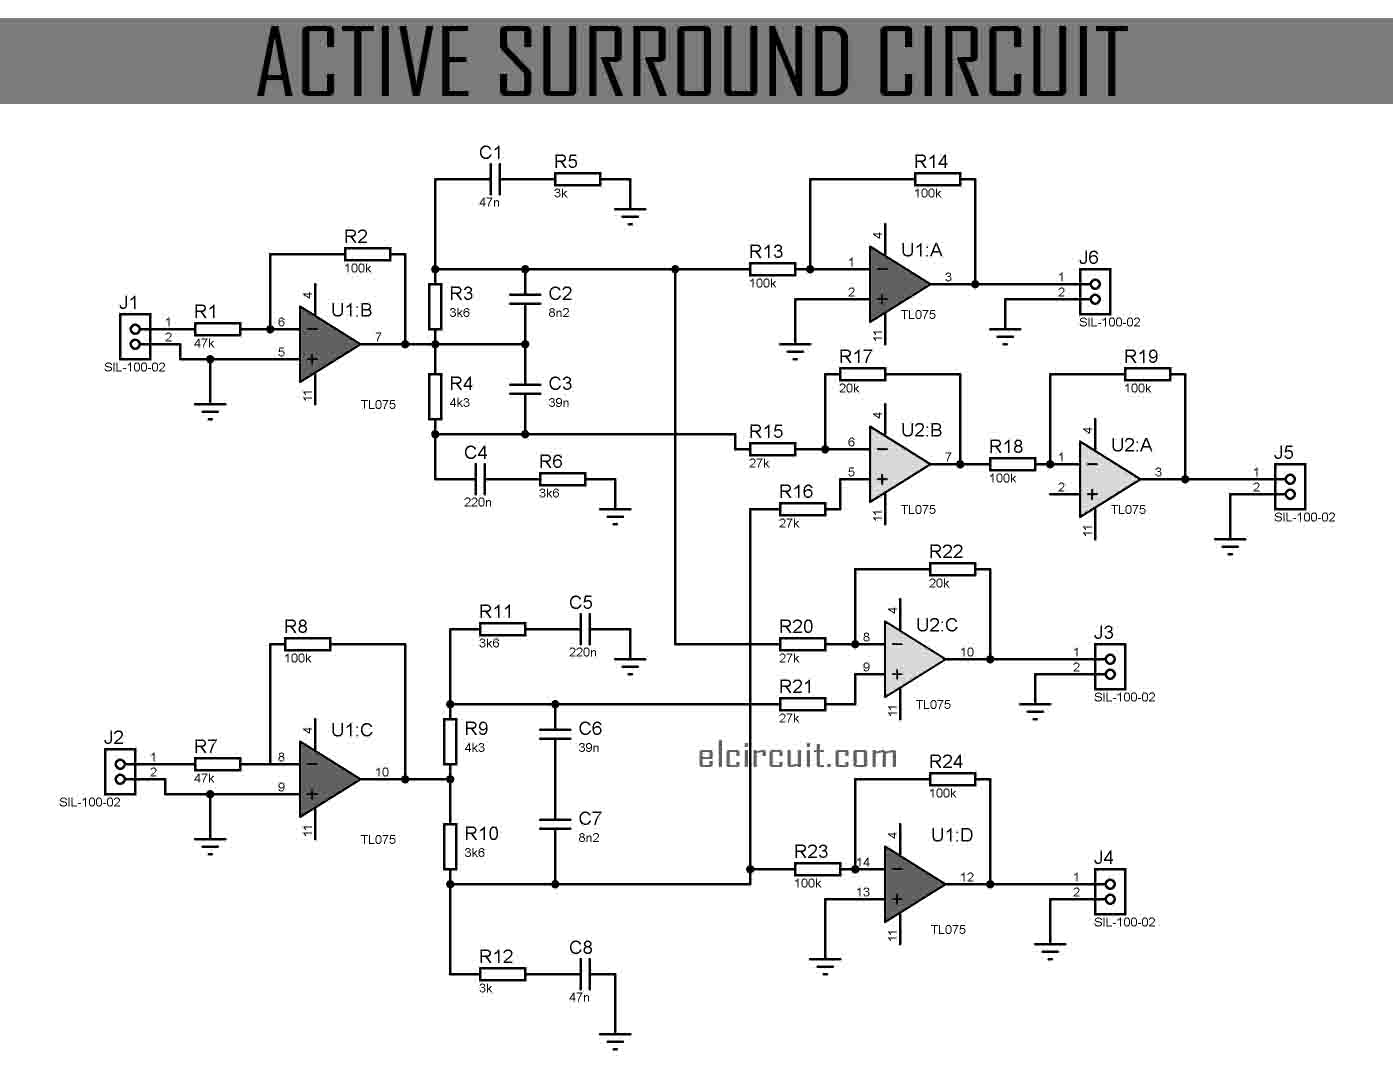 add speaker subwoofer and amplifier to add more booming bass sound below the active surround sound circuit diagram include regulated power supply 12v  [ 1393 x 1079 Pixel ]